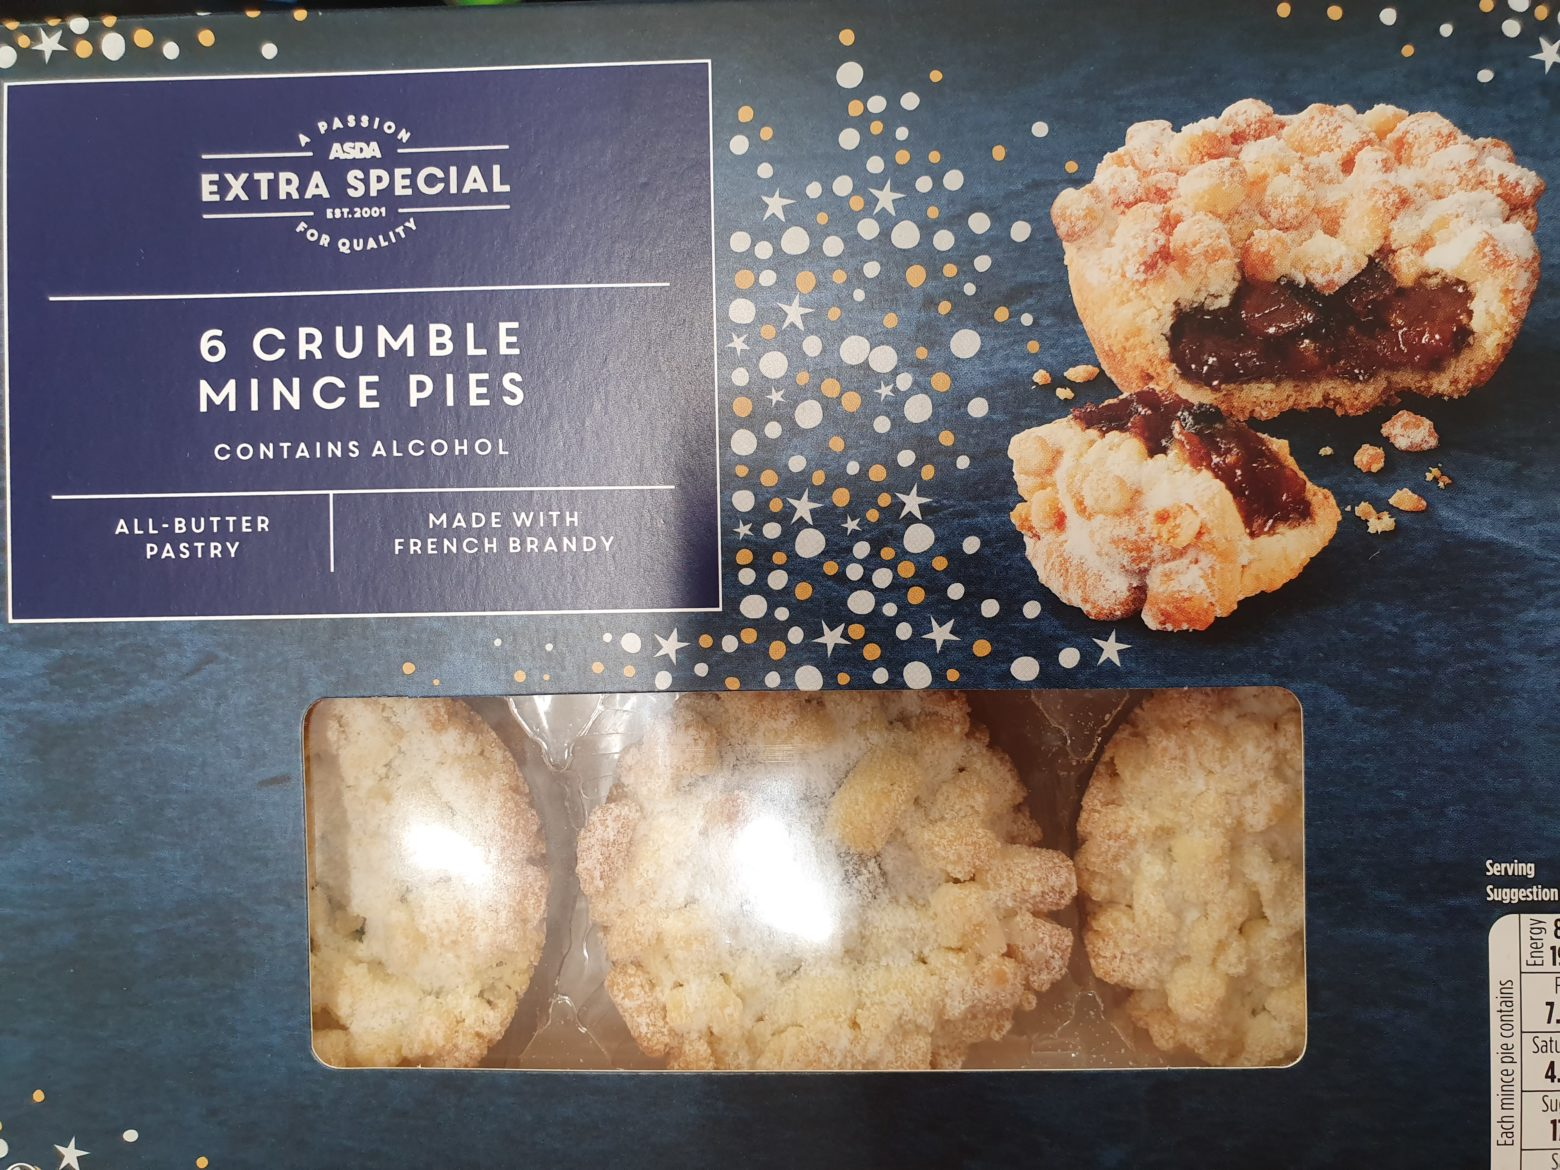 ASDA Extra Special Crumble Mince Pie Review 2019